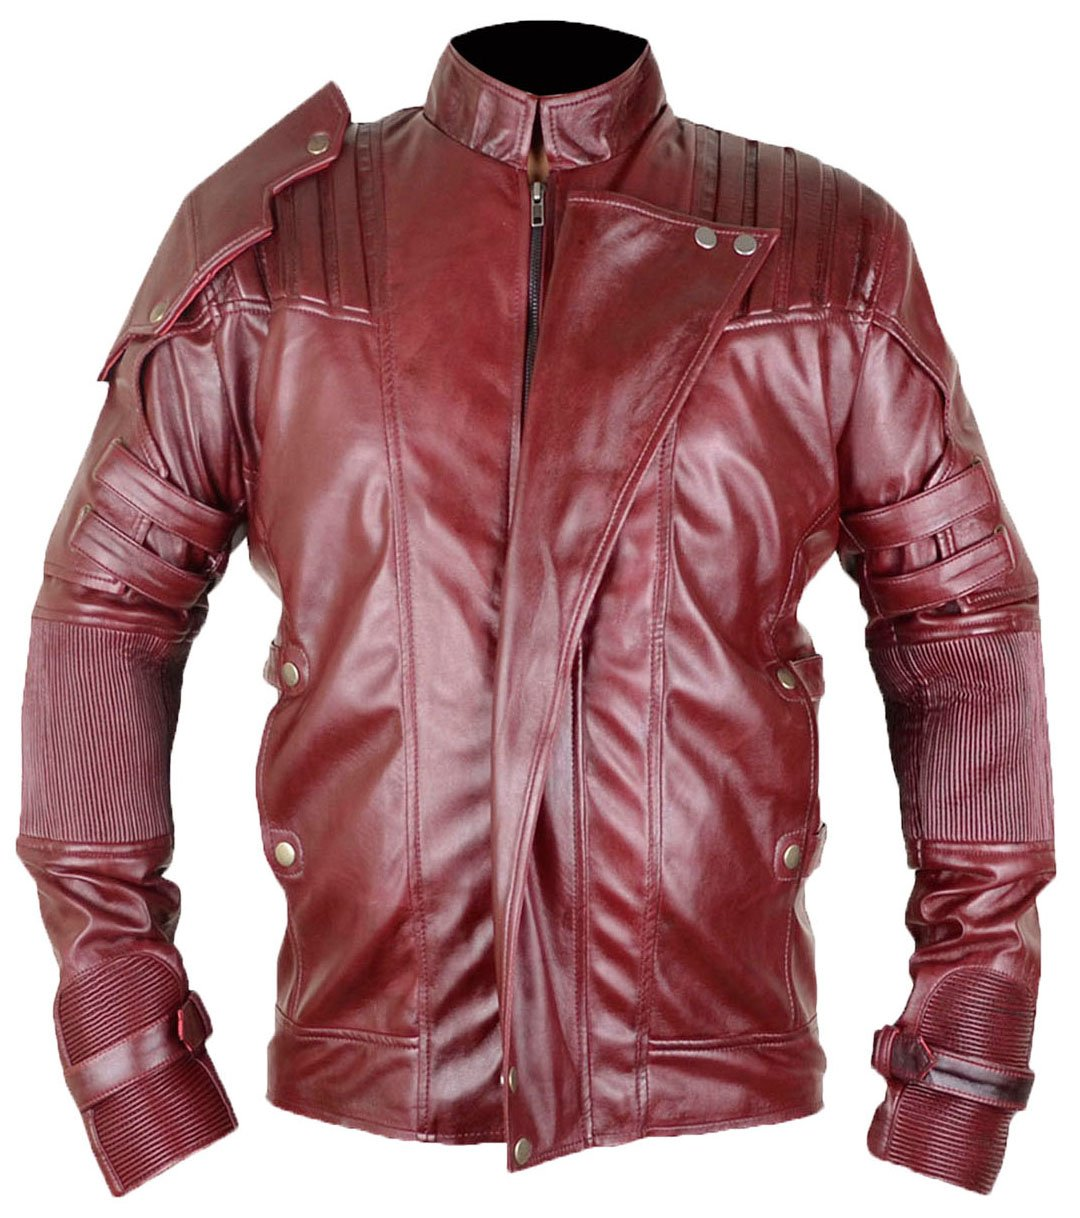 MSHC Guardians Of The Galaxy 2 Star Lord Peter Jason quill Faux Leather Jacket Burgundy (5XL)